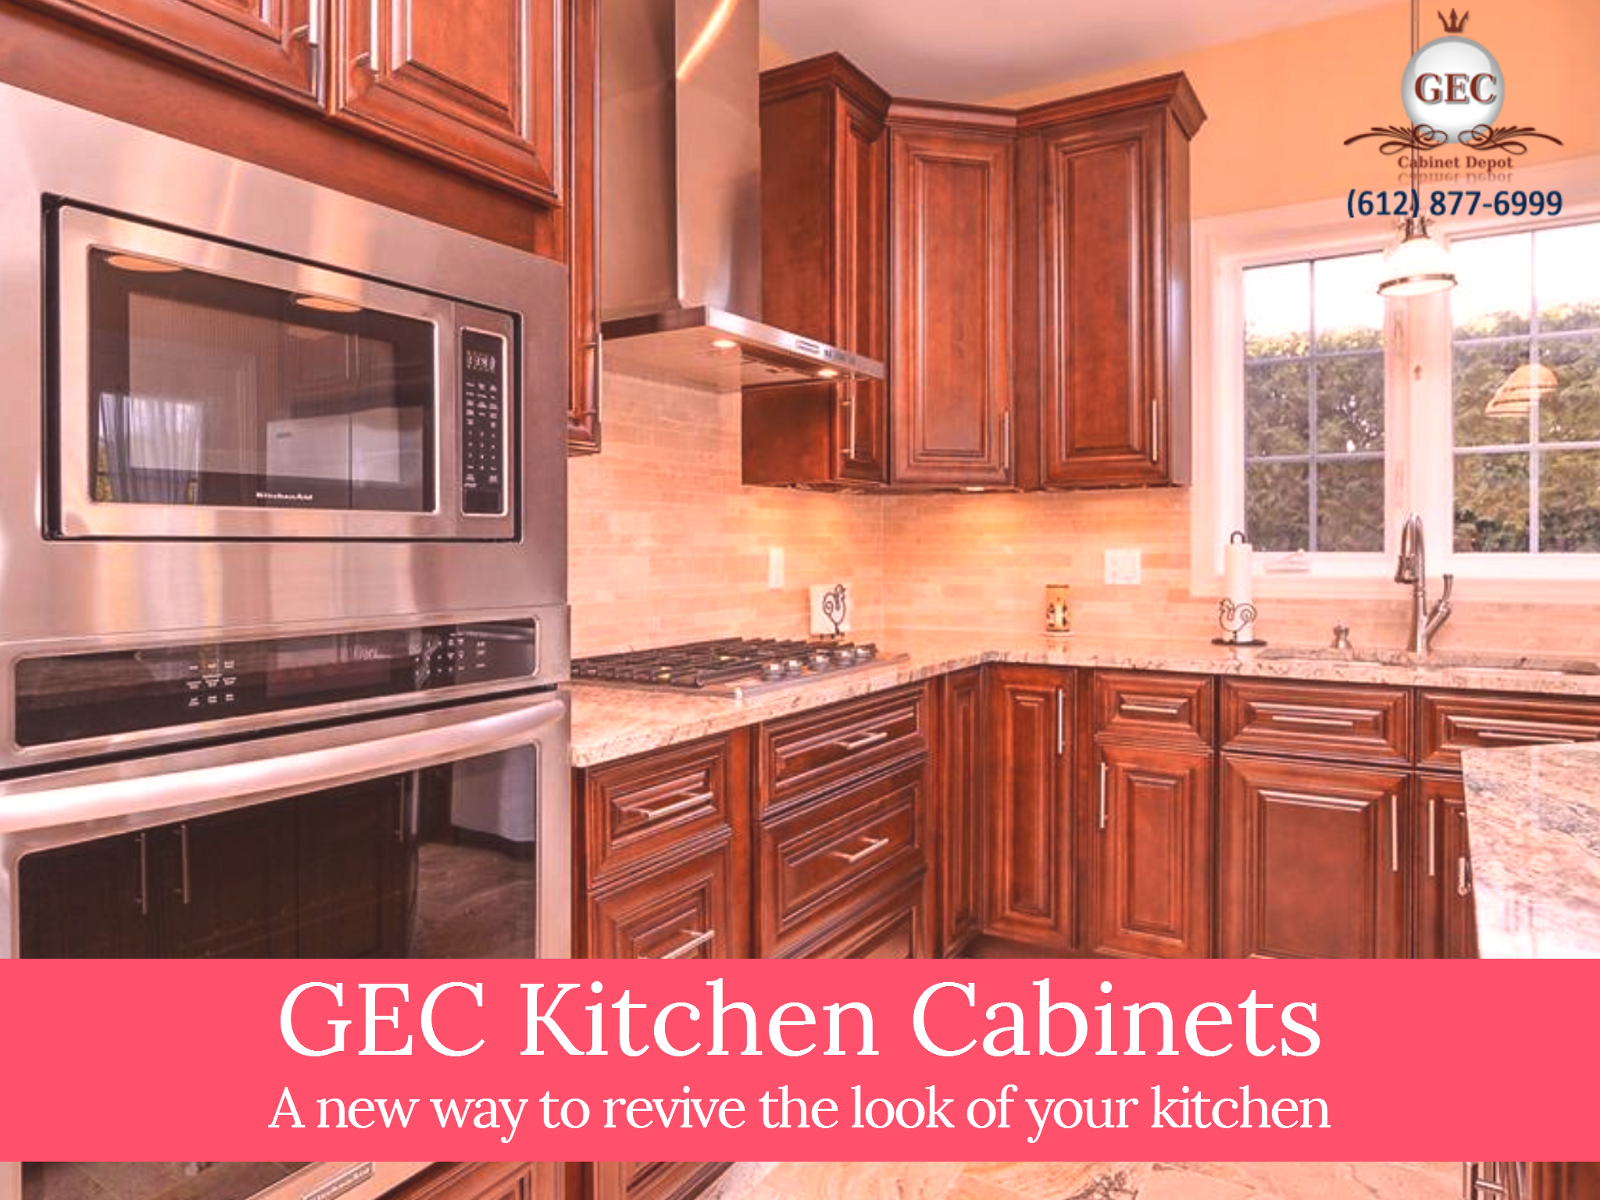 Rta Kitchen Cabinets The Newest Way To Save Your Money While Renovating